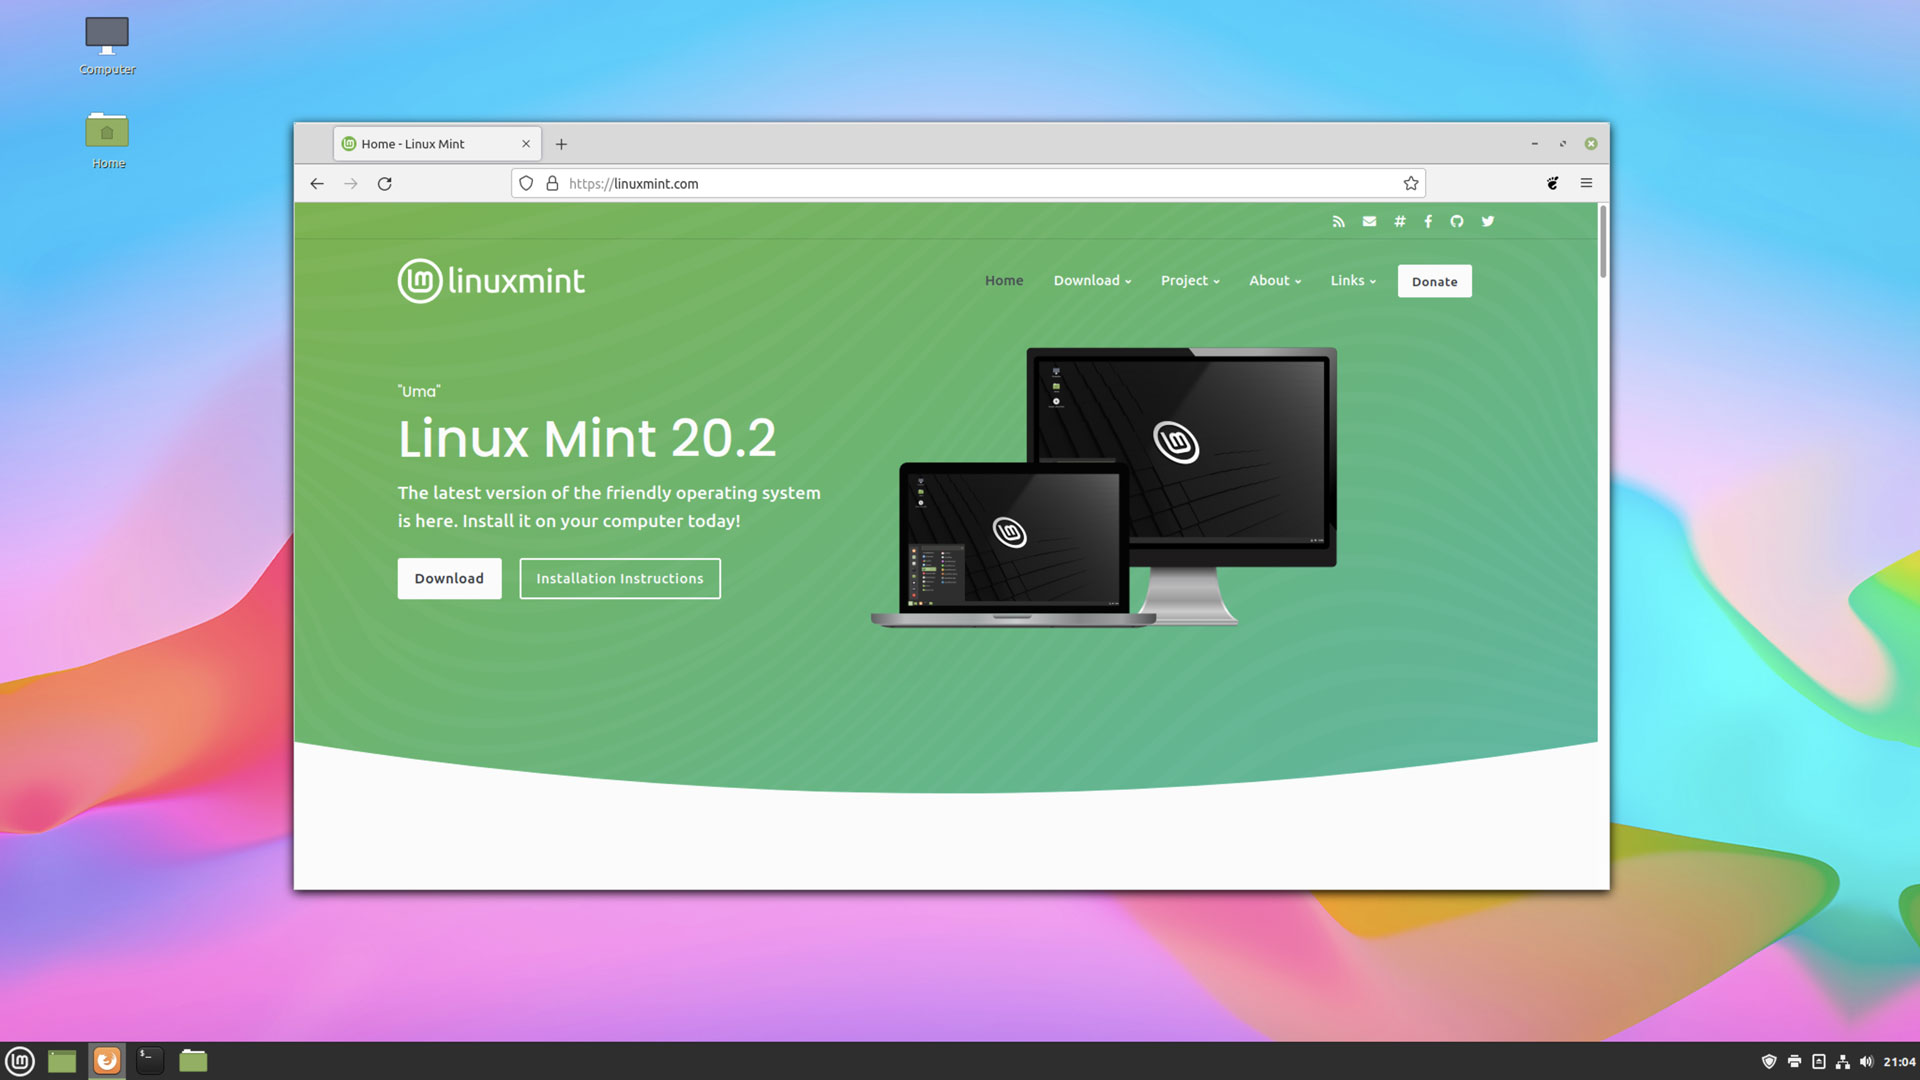 A screenshot of the Linux Mint website in Firefox on Cinnamon